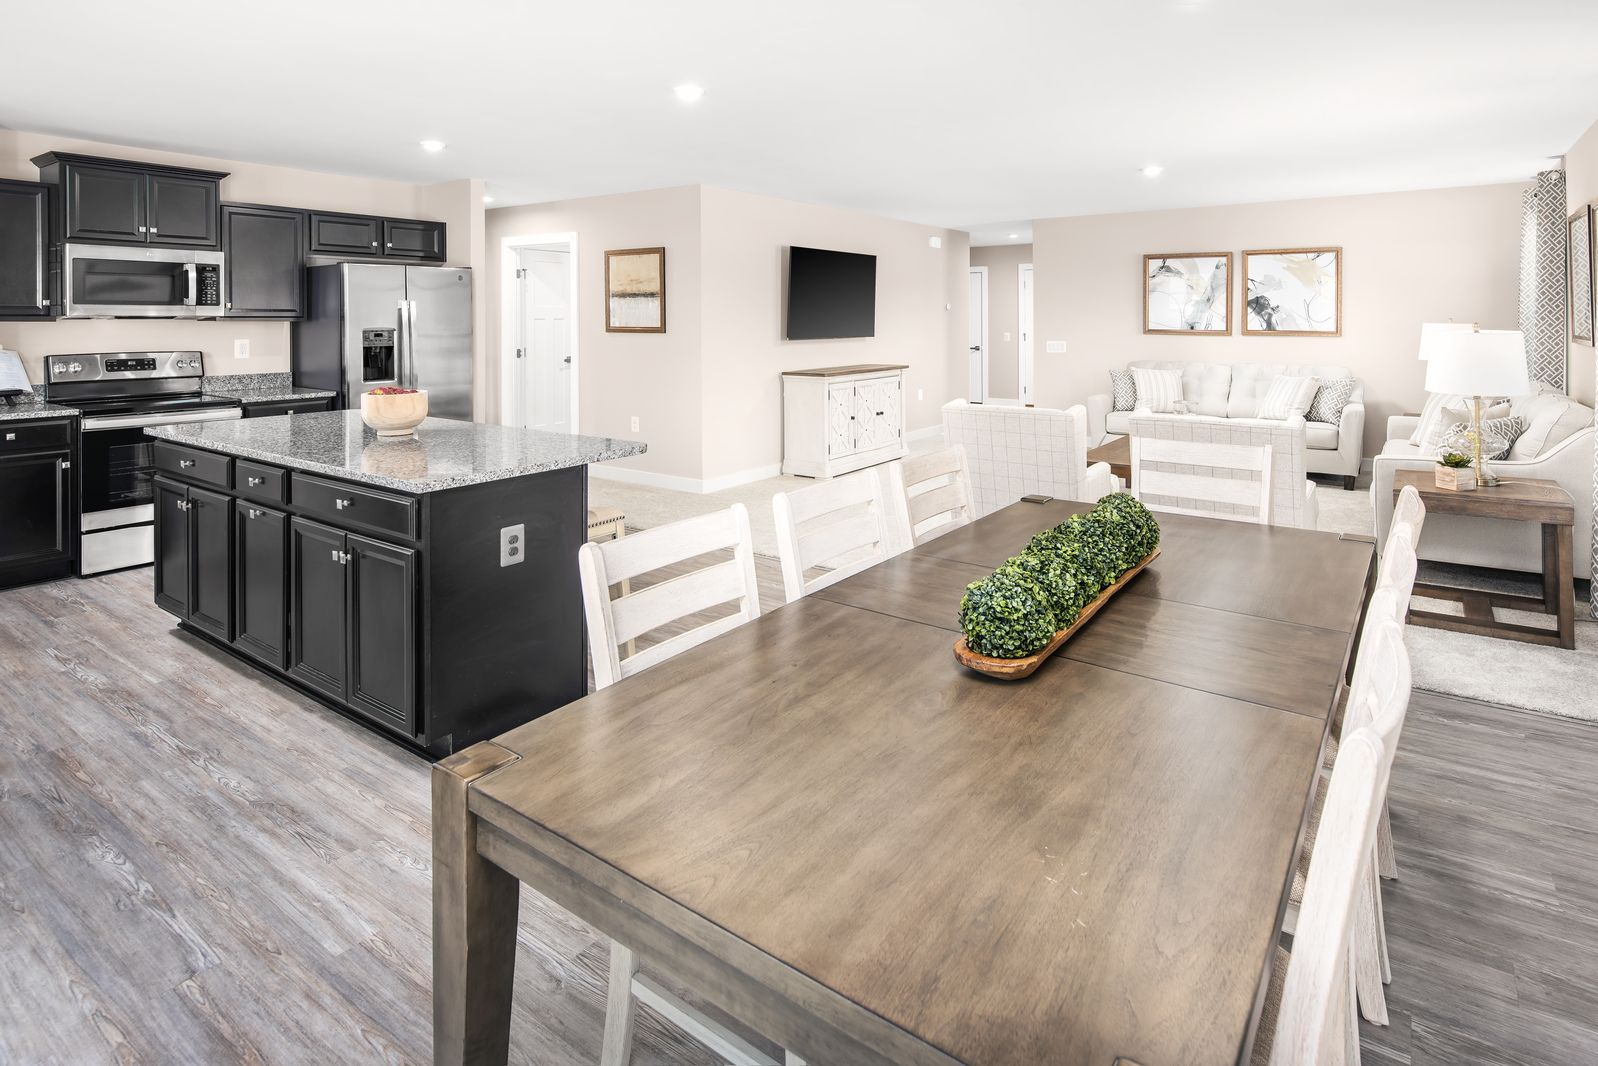 Living Area featured in the Eden Cay By Ryan Homes in Akron, OH